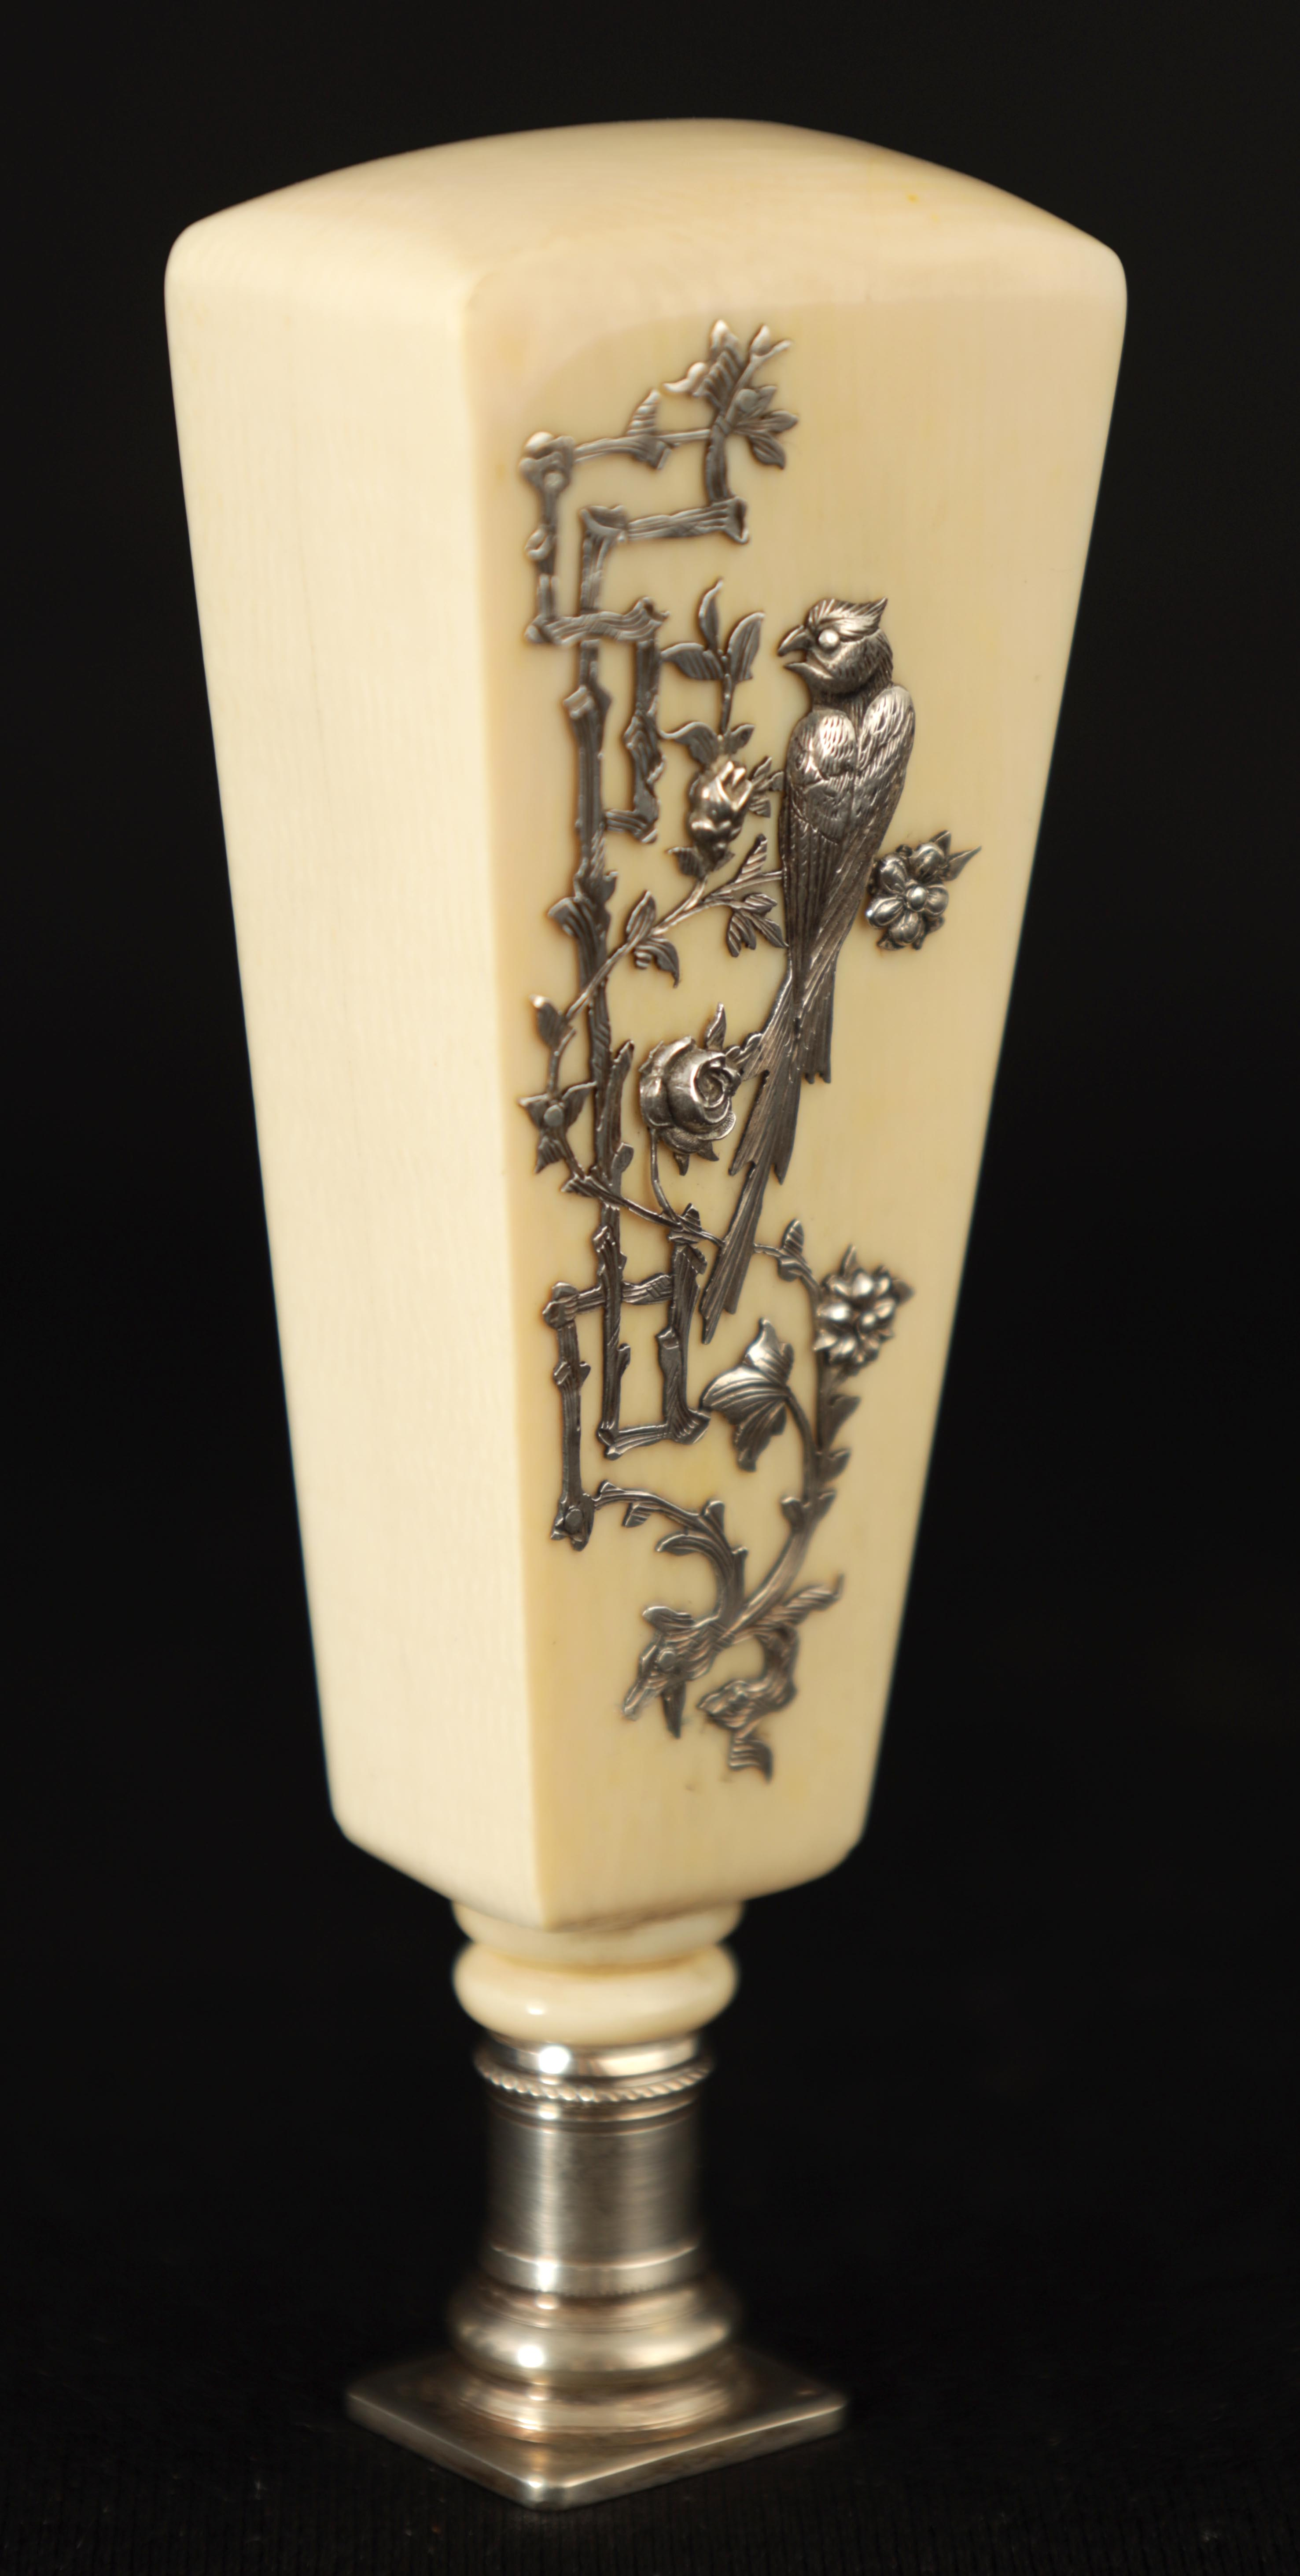 A LATE 19TH CENTURY FRENCH IVORY AND SILVER SEAL the tapered handle decorated with finely pierced